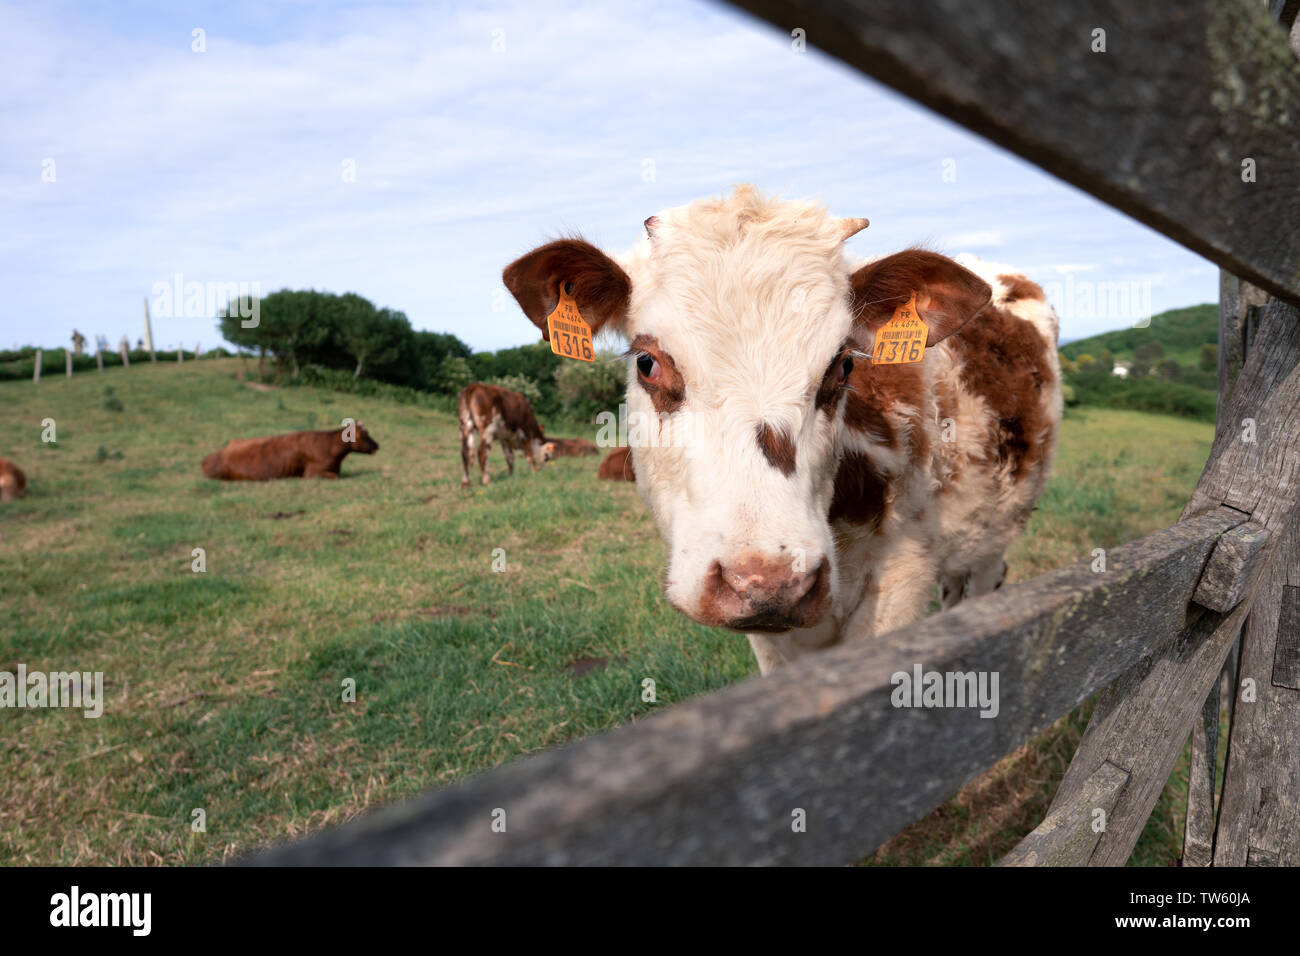 A cow looking through a wooden enclosure in Nornandy, France - green pasture in the background and a beautiful blue sky - Stock Image